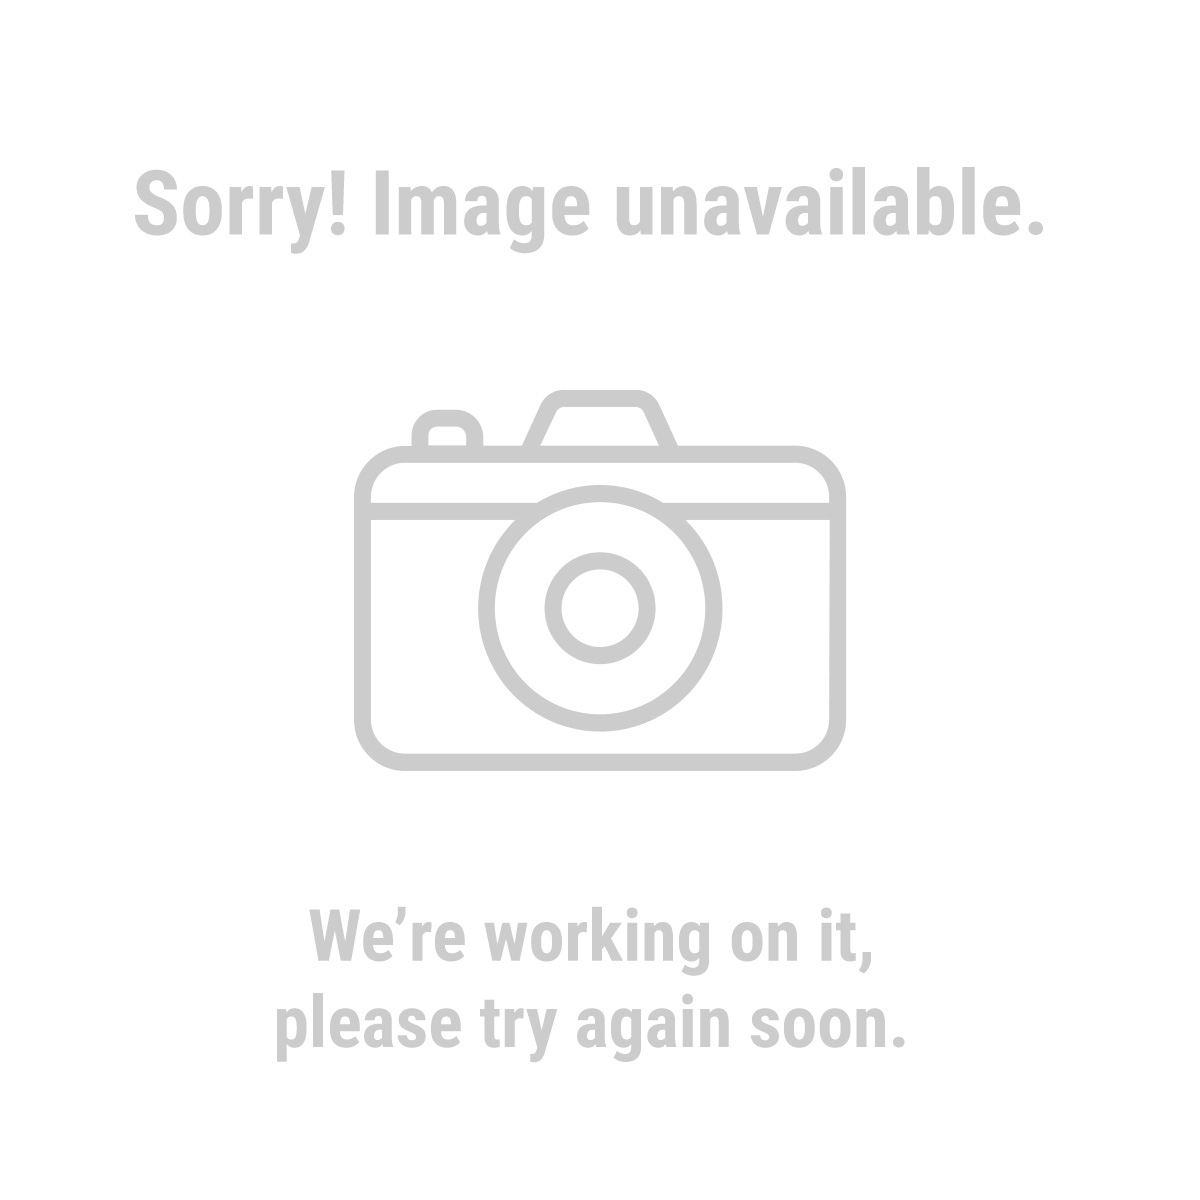 IRON ARMOR® 60774 16 oz. Iron Armor® Black Rubberized Undercoating Spray Paint